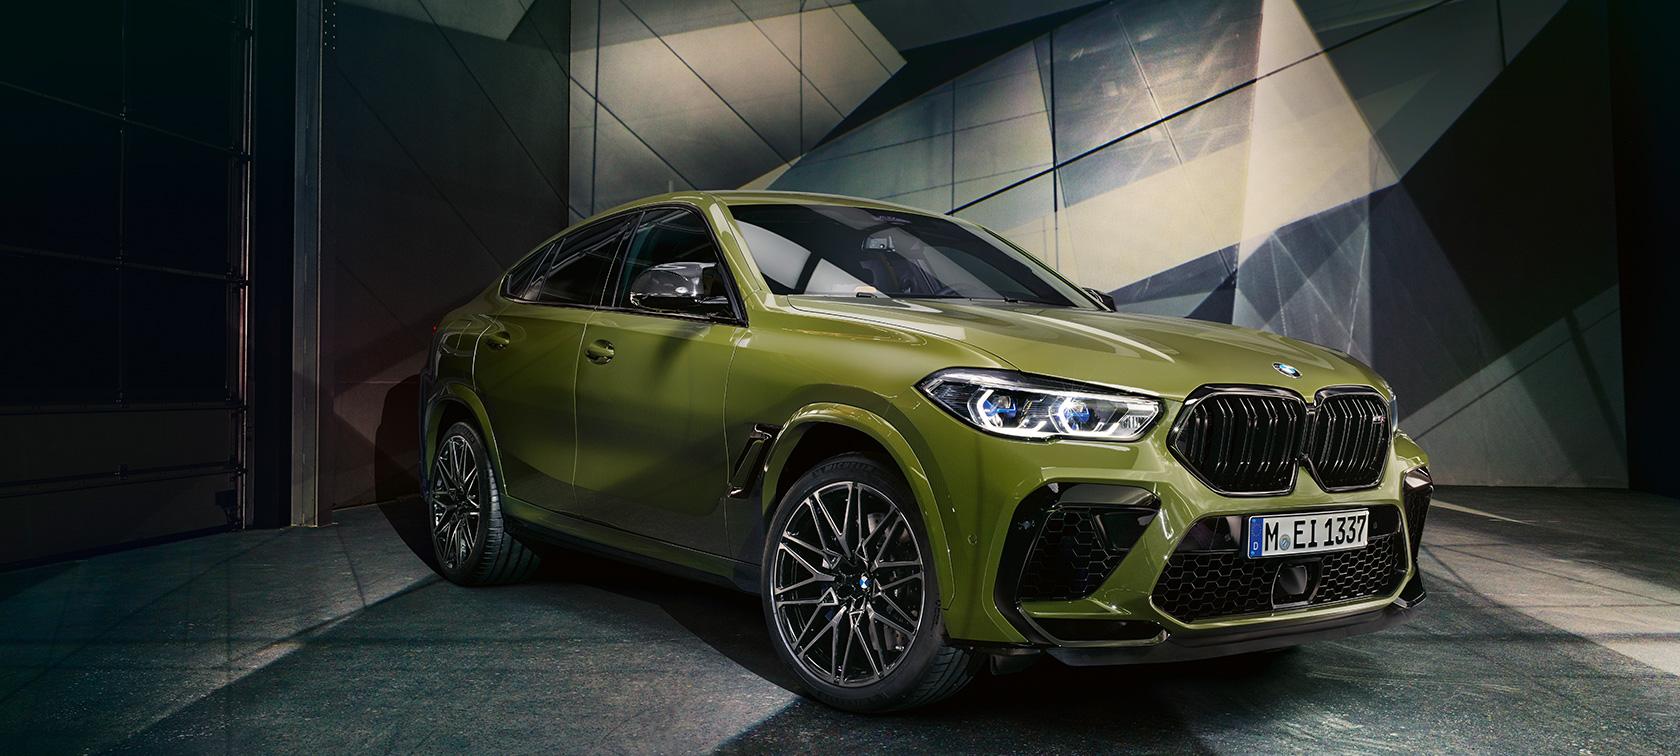 BMW X6 M Competition  toonis BMW Individual Special Paint Urban Green, SUV F96 2020 külgvaade